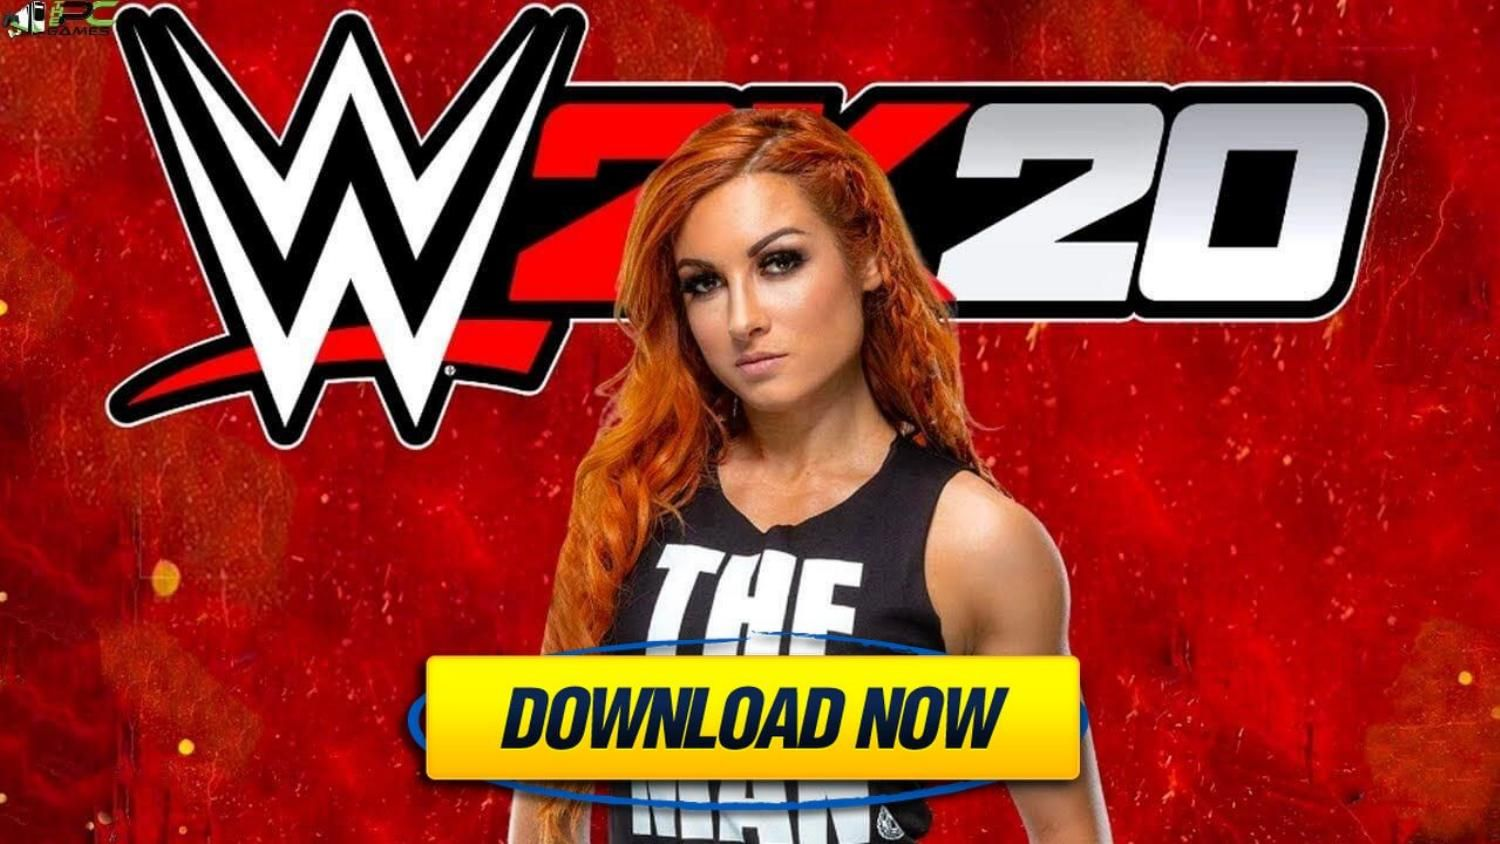 WWE Smackdown VS Raw 2011 Free Download (With images